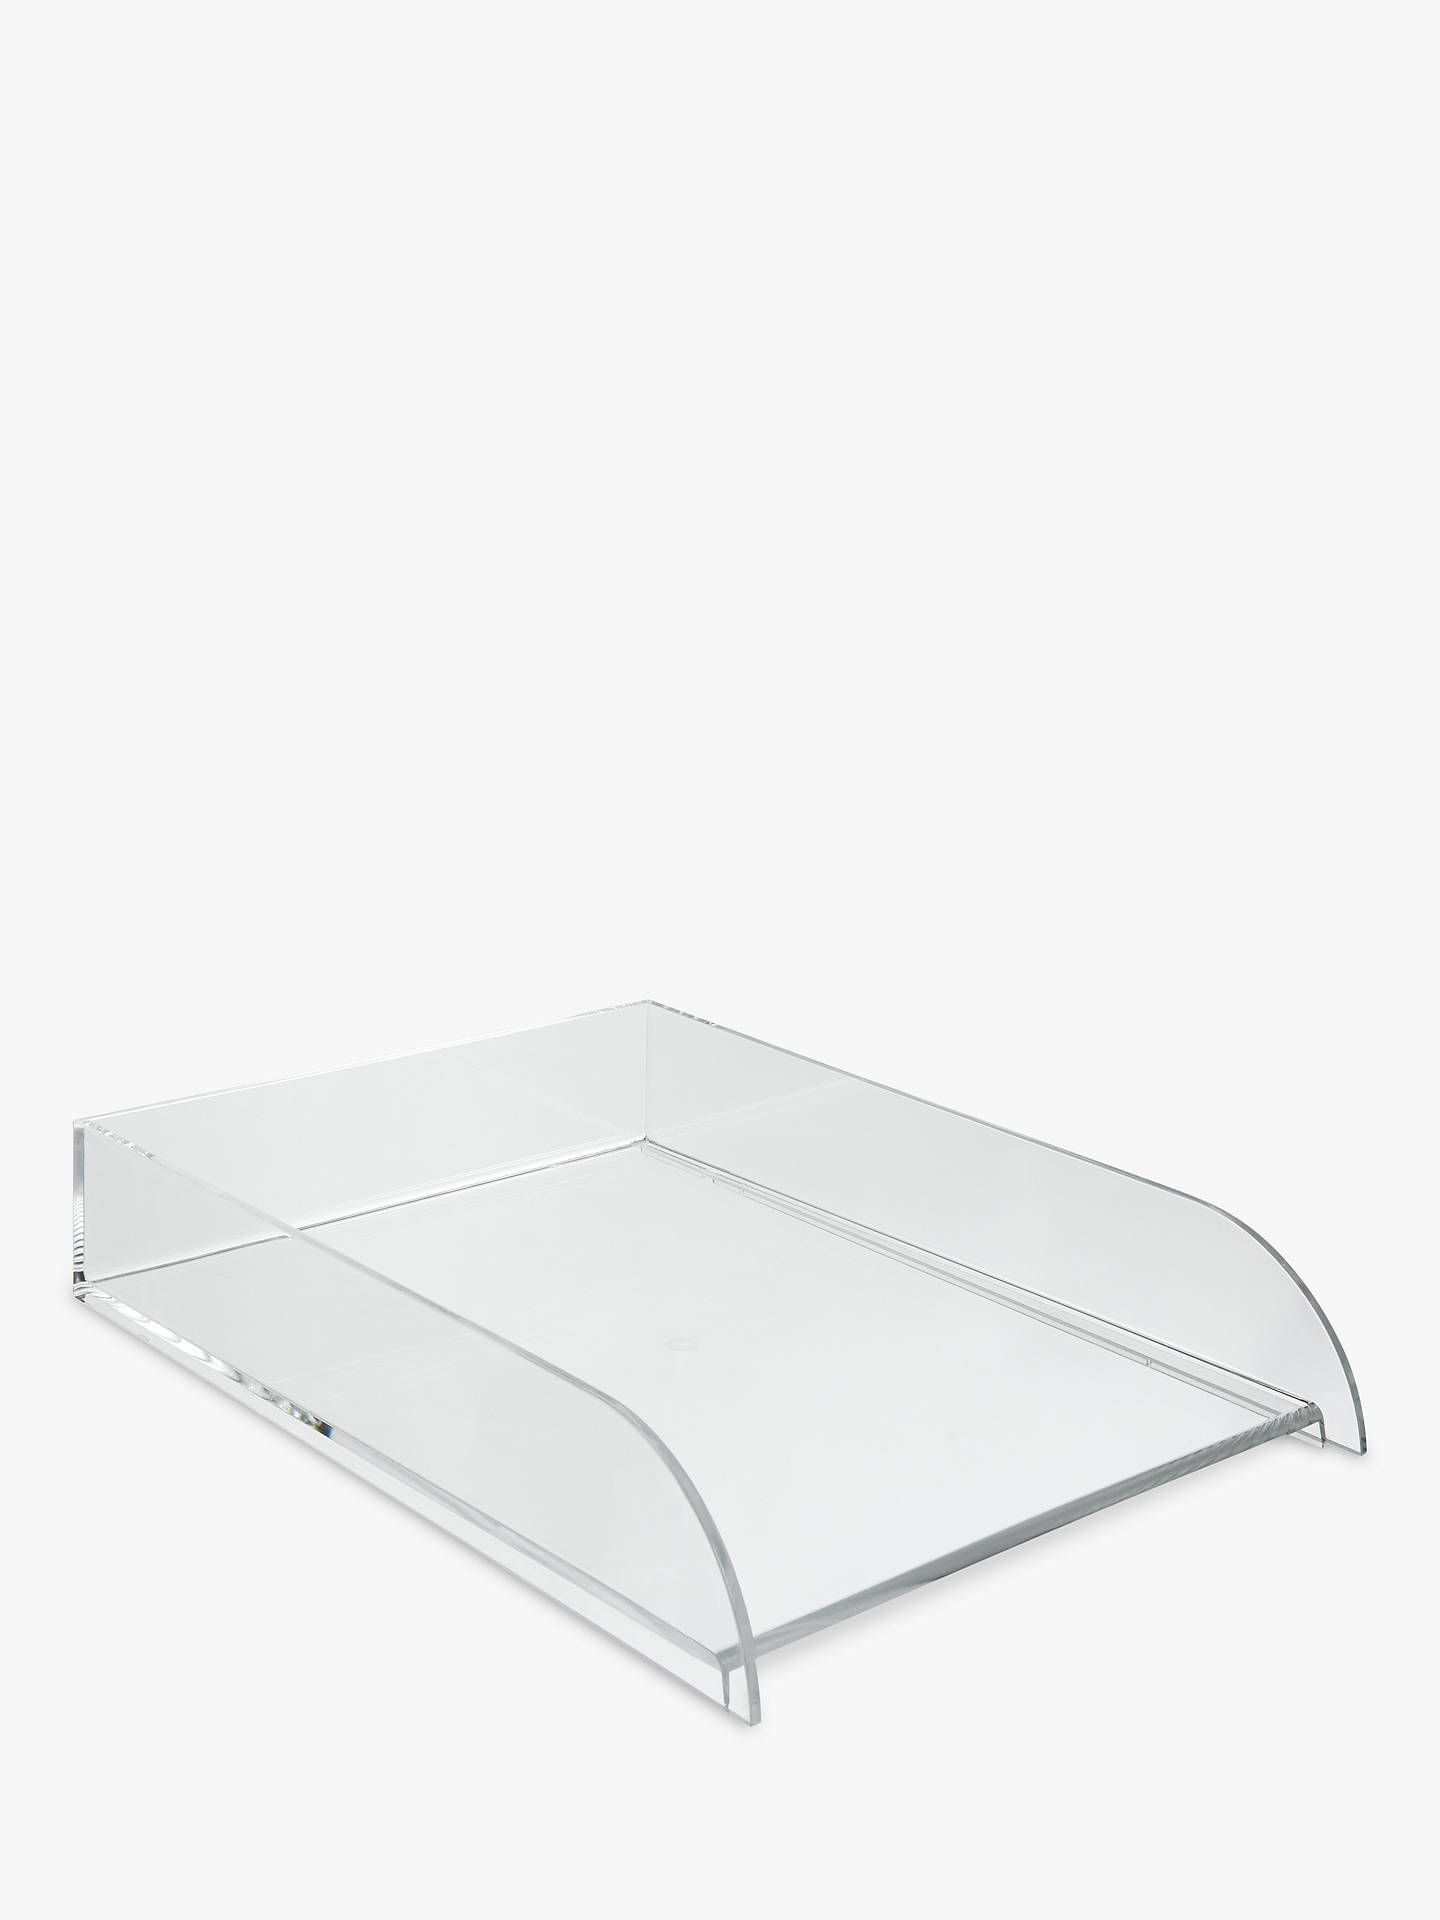 Osco Acrylic Stacking Tray Clear At John Lewis Partners